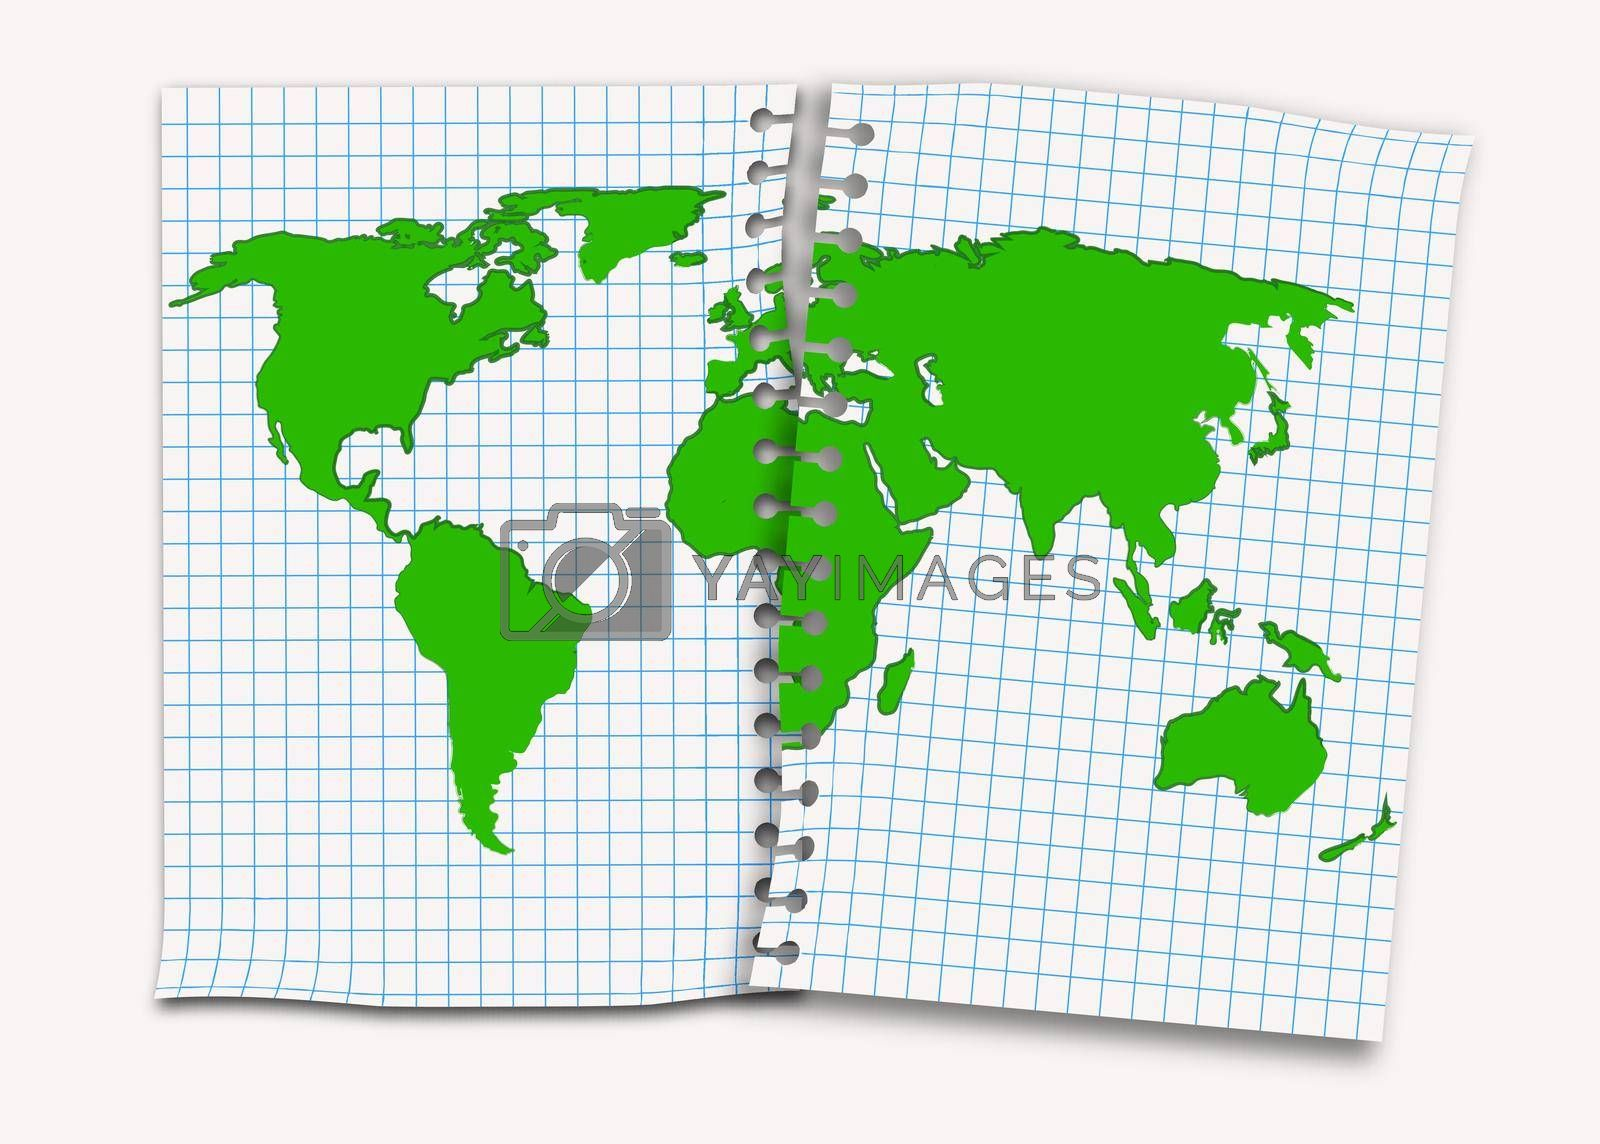 continents of the planet earth are drawn on notebook sheets. Concept on environmental protection. Isolated vector on white background